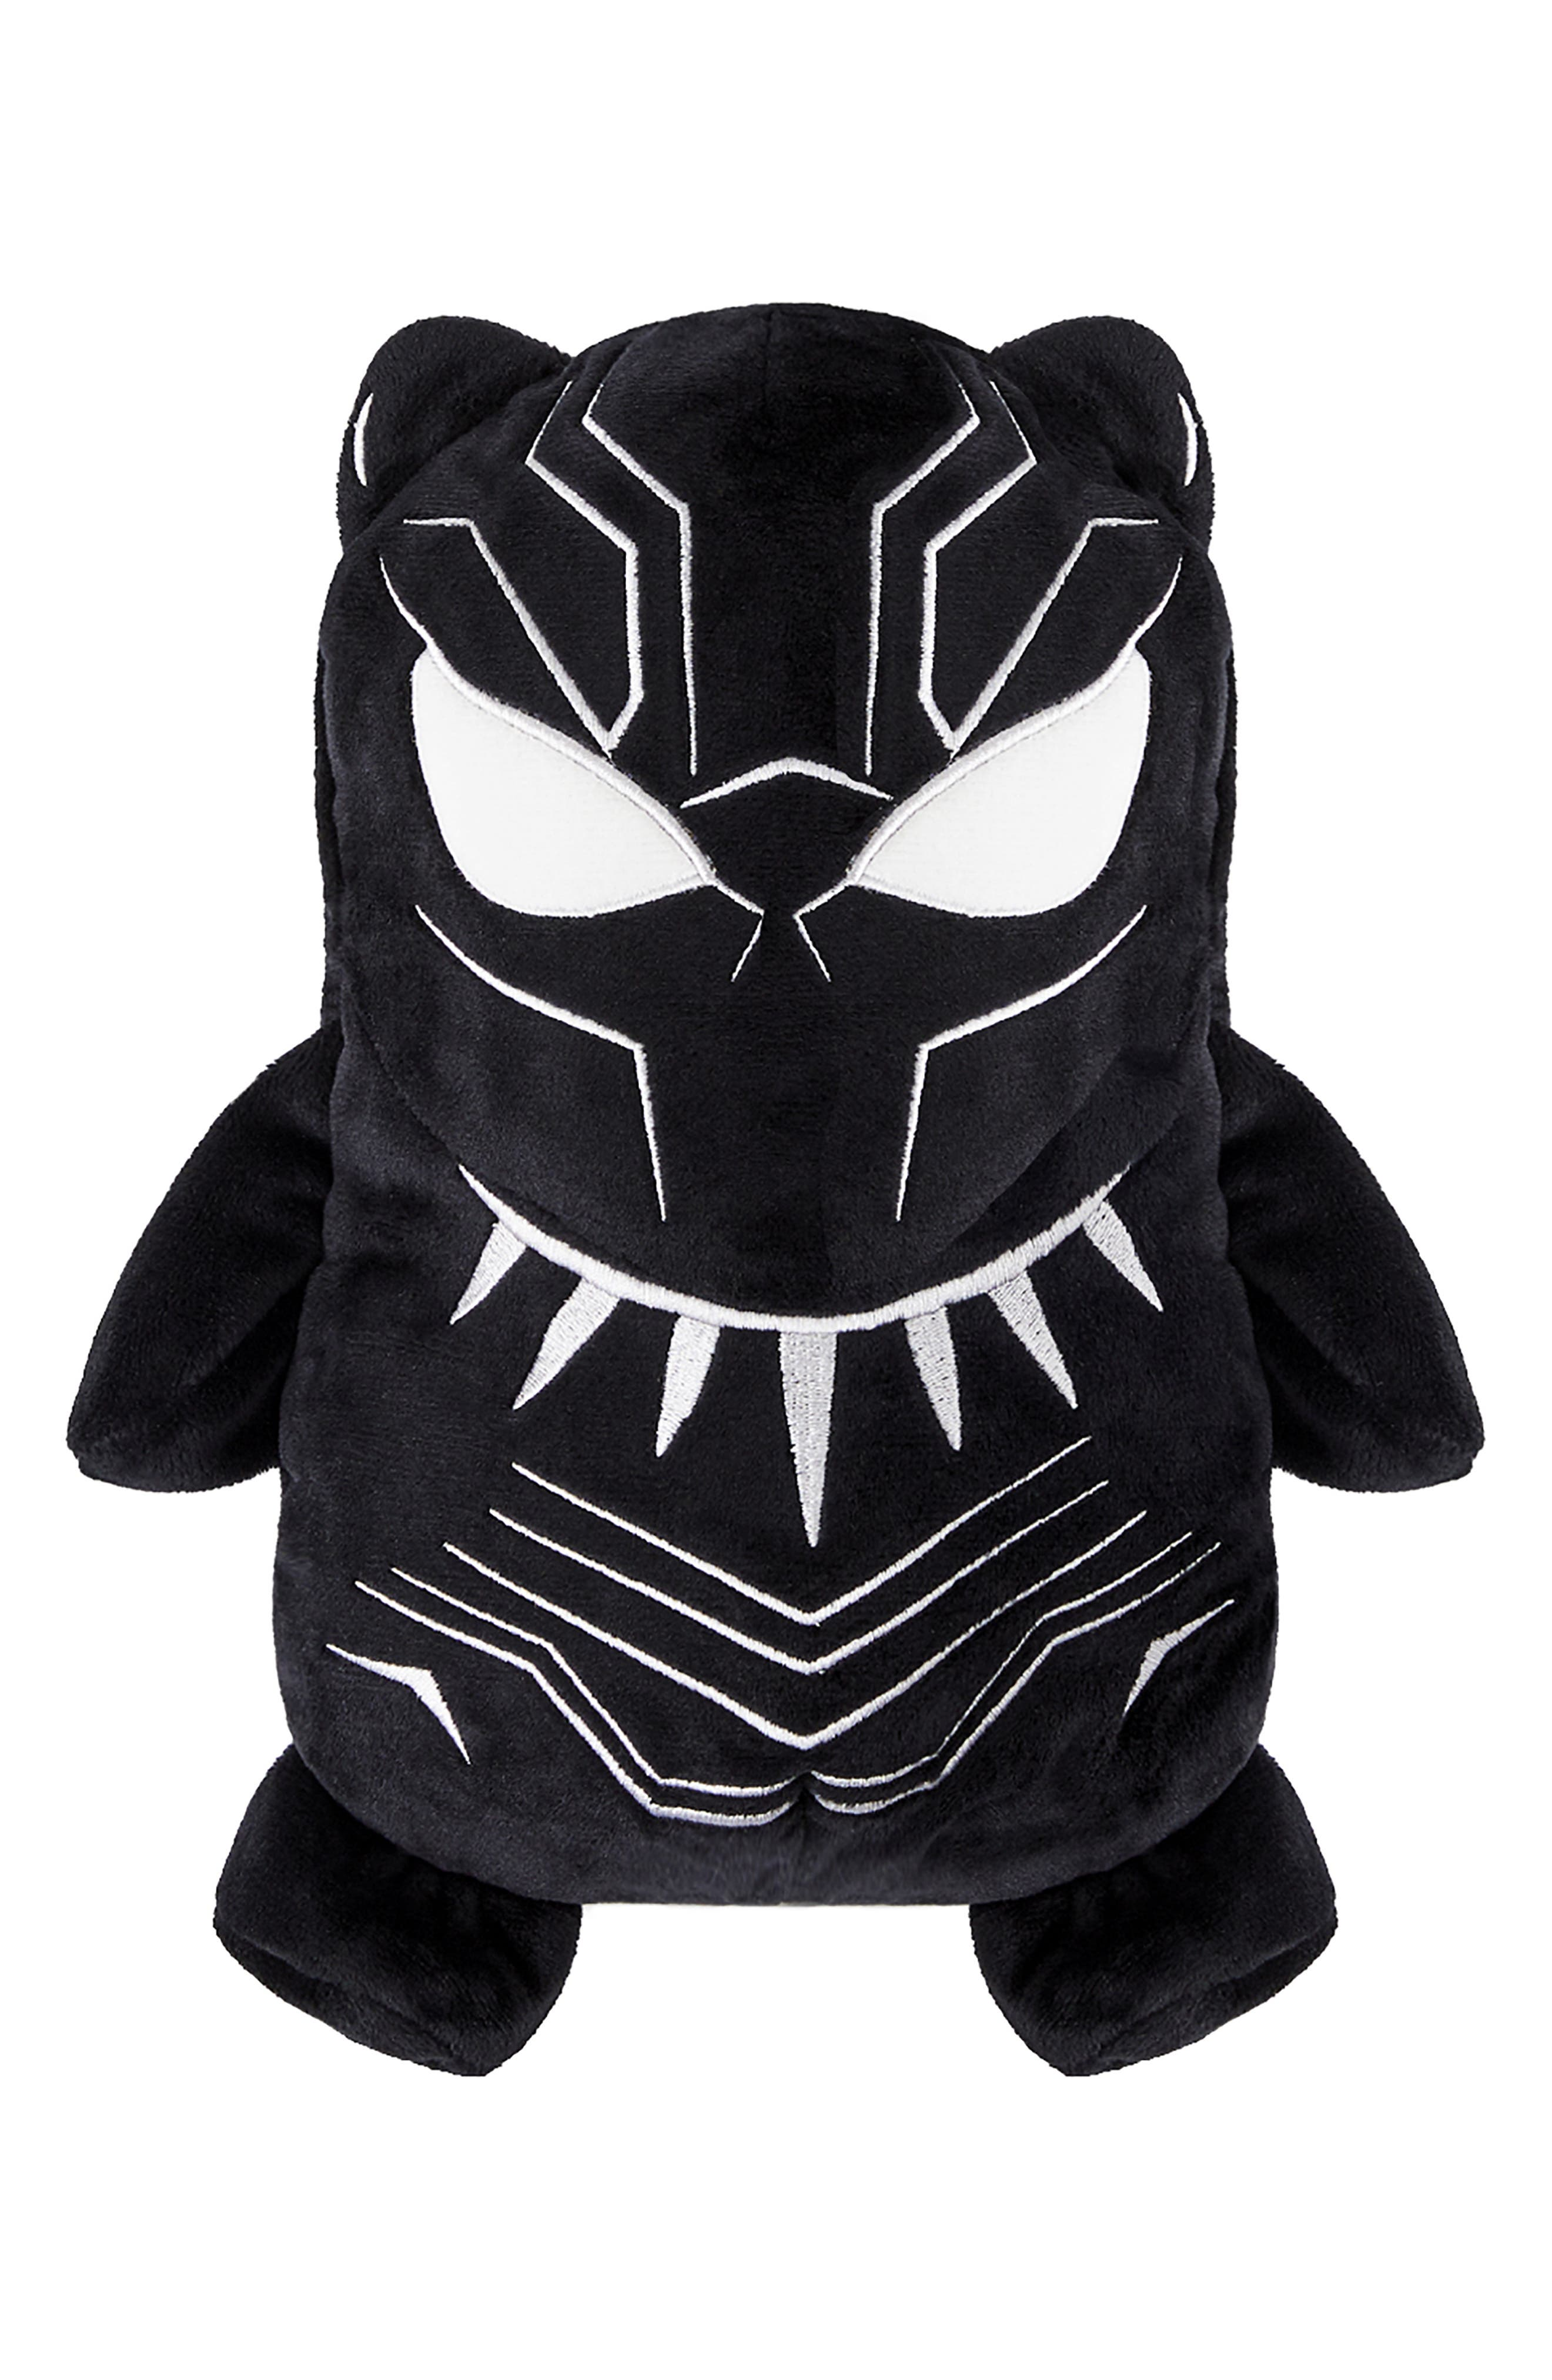 Marvel<sup>®</sup> 2018 Black Panther<sup>®</sup> 2-in-1 Stuffed Animal Hoodie,                             Main thumbnail 1, color,                             BLACK